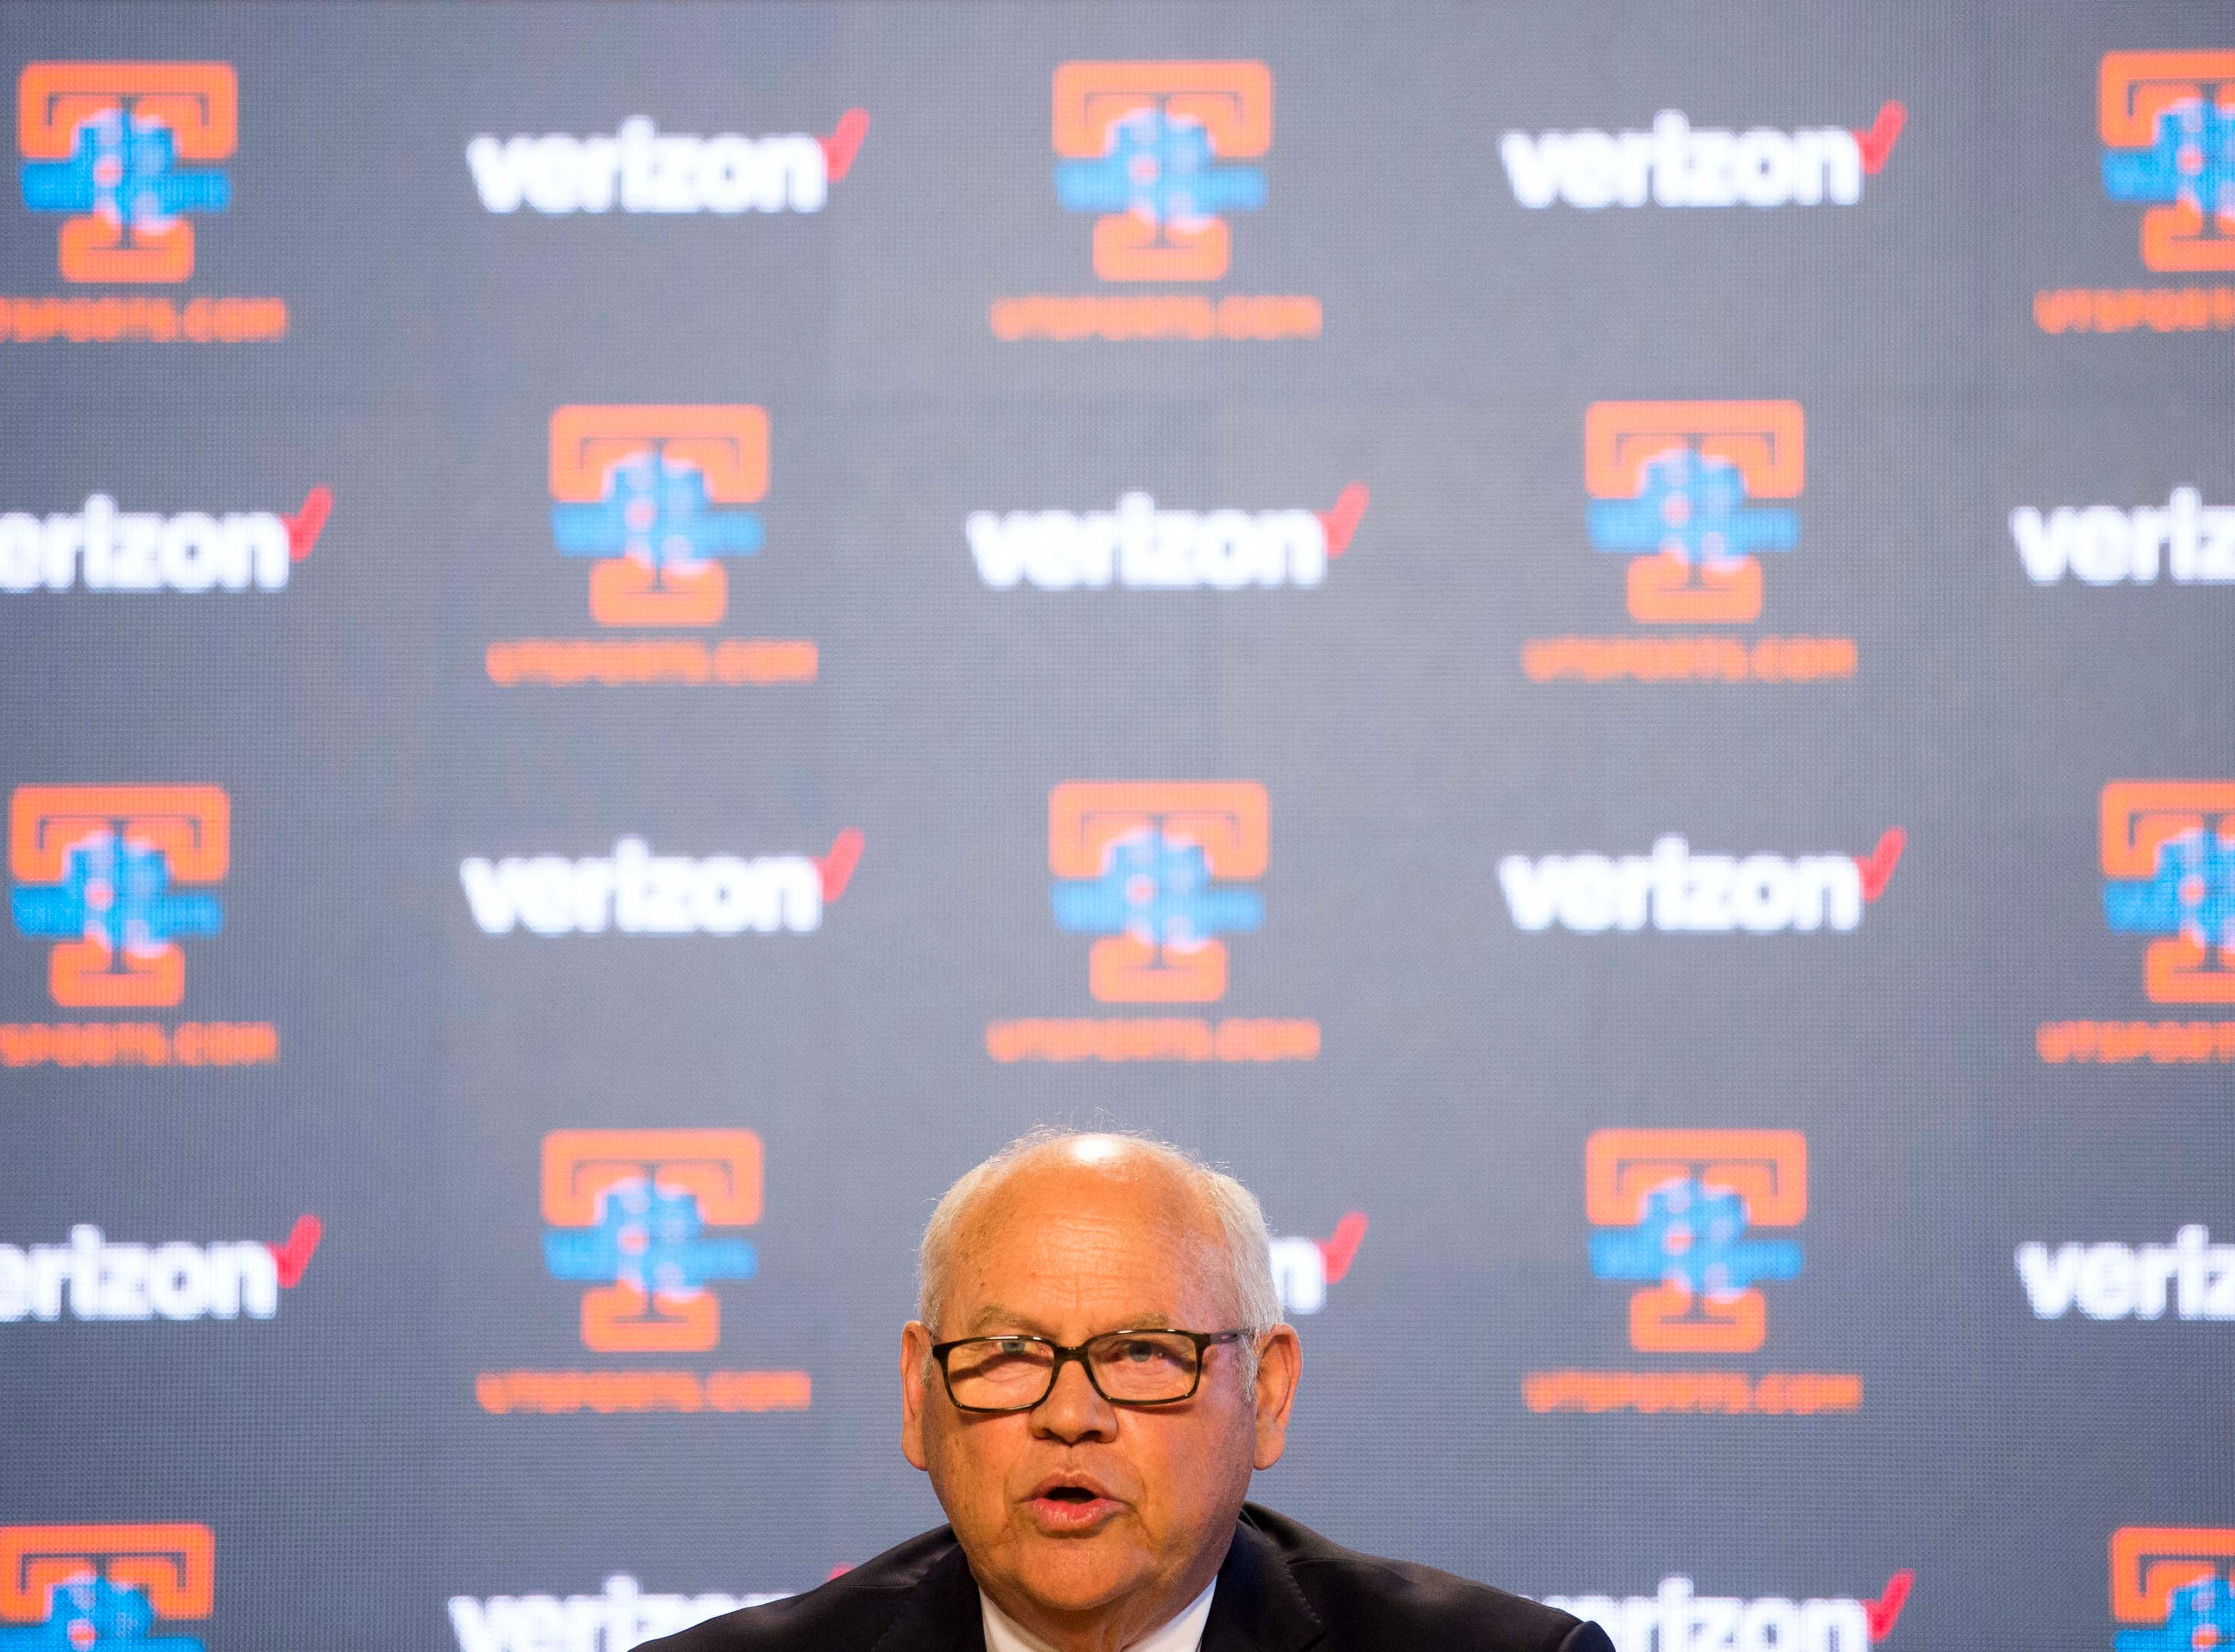 University of Tennessee athletic director Phillip Fulmer speaks during a press conference announcing Kellie Harper as new head coach of the Lady Vols, in the Ray and Lucy Hand Studio on University of Tennessee's campus Wednesday, April 10, 2019.